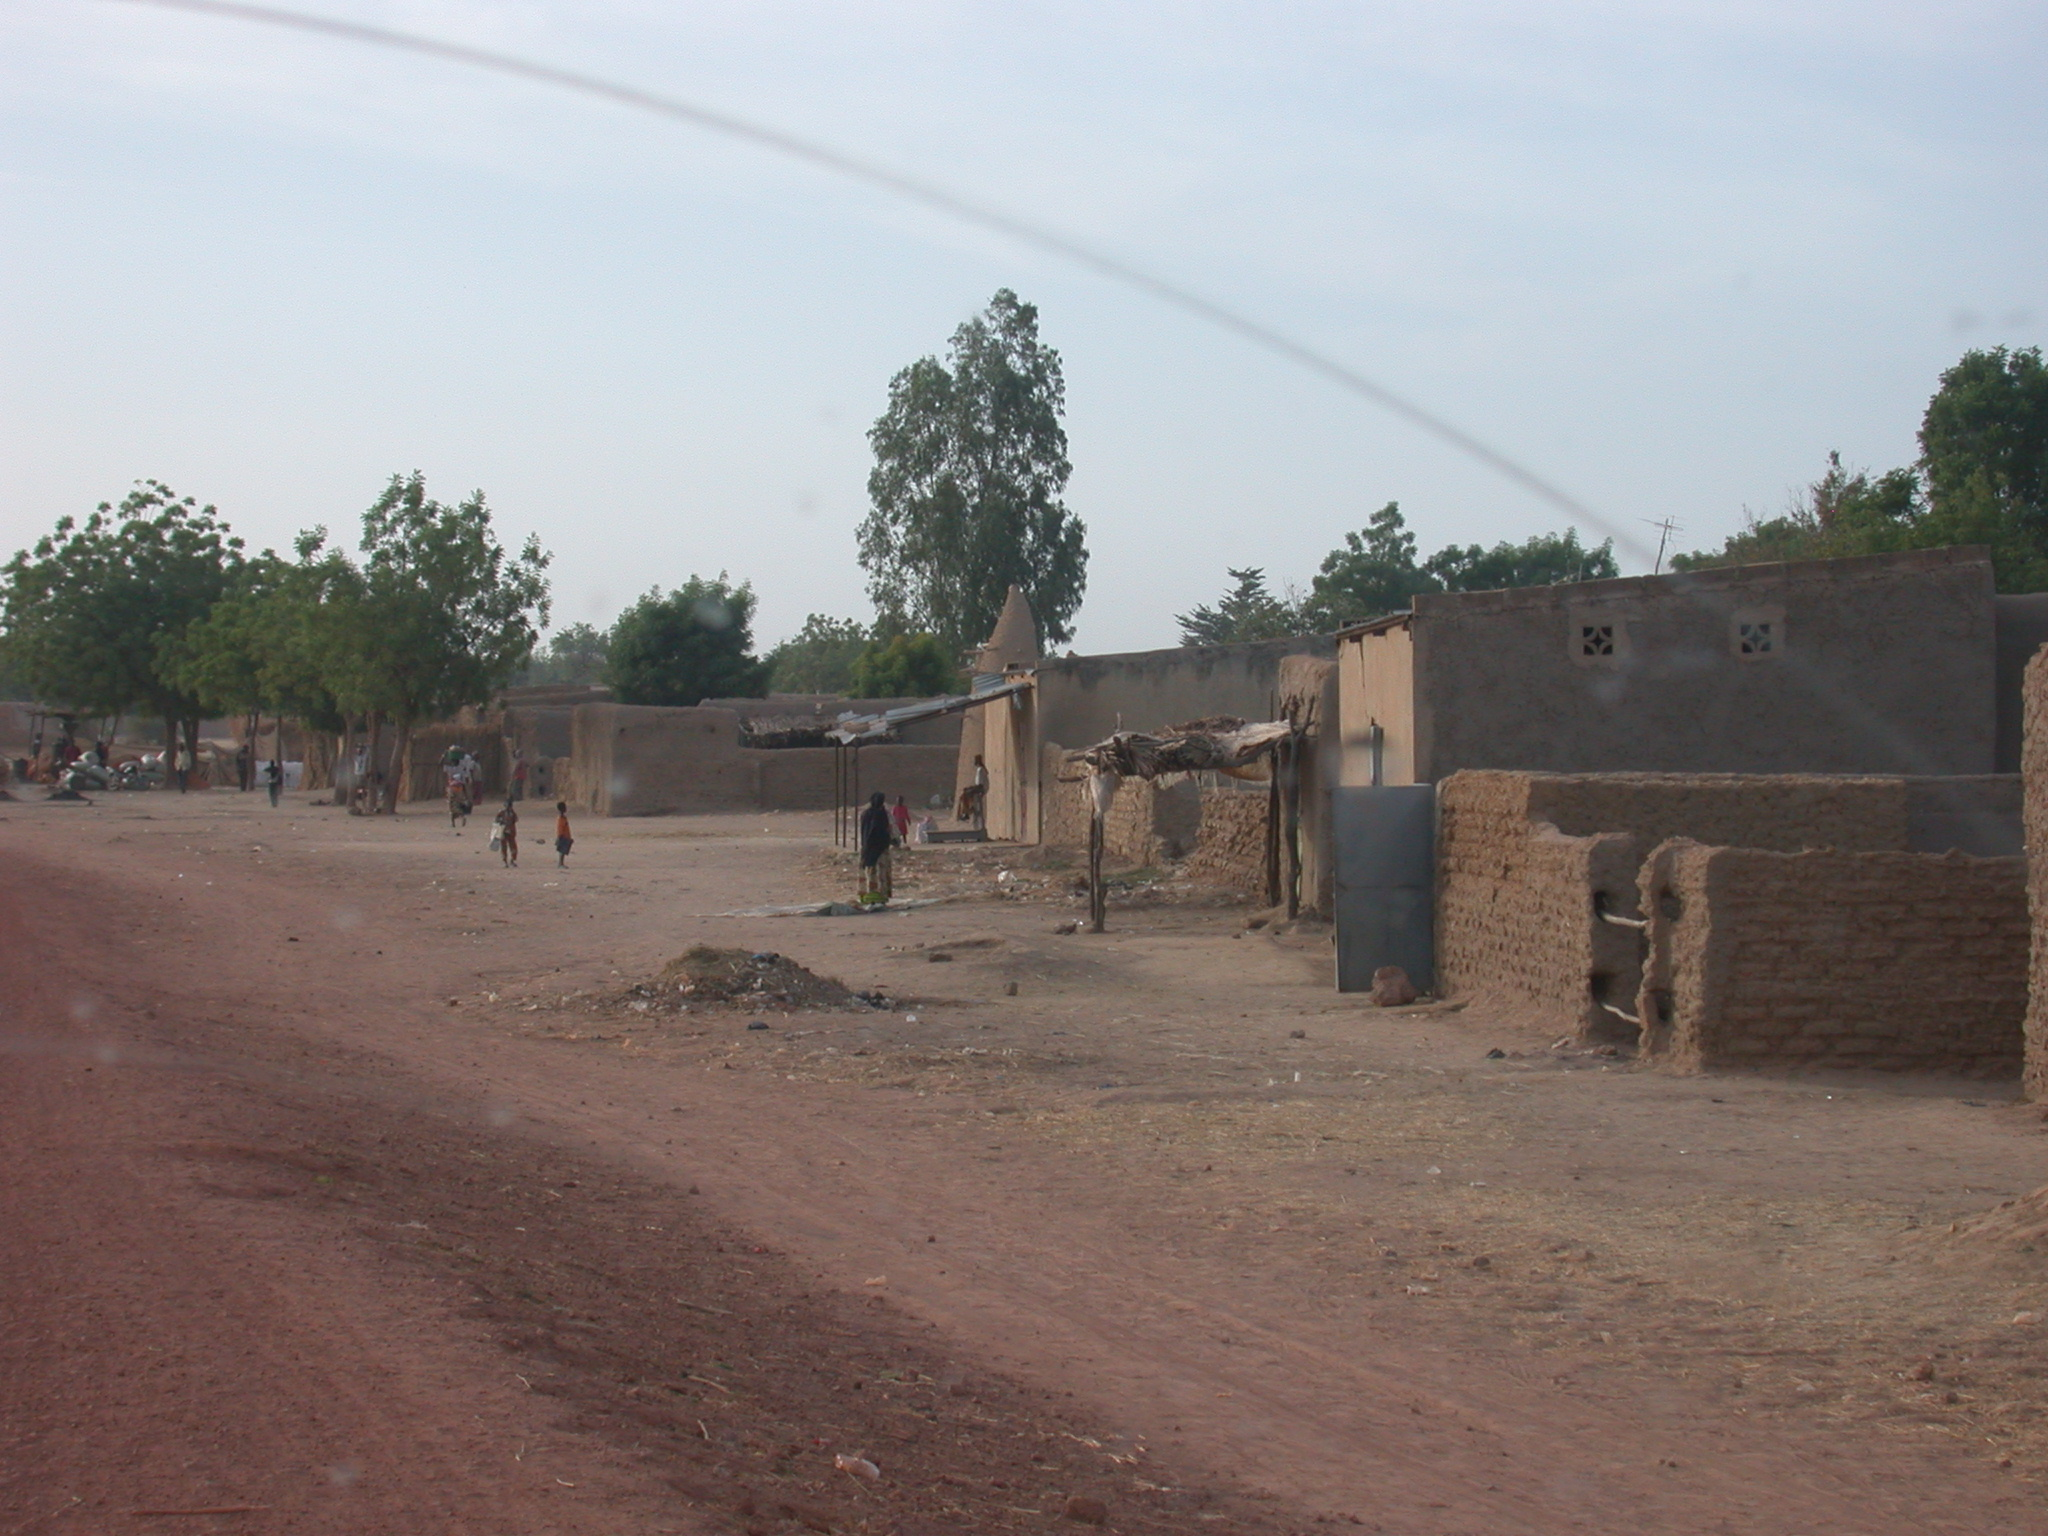 Town on the Route From Sokolo to Niono, Mali